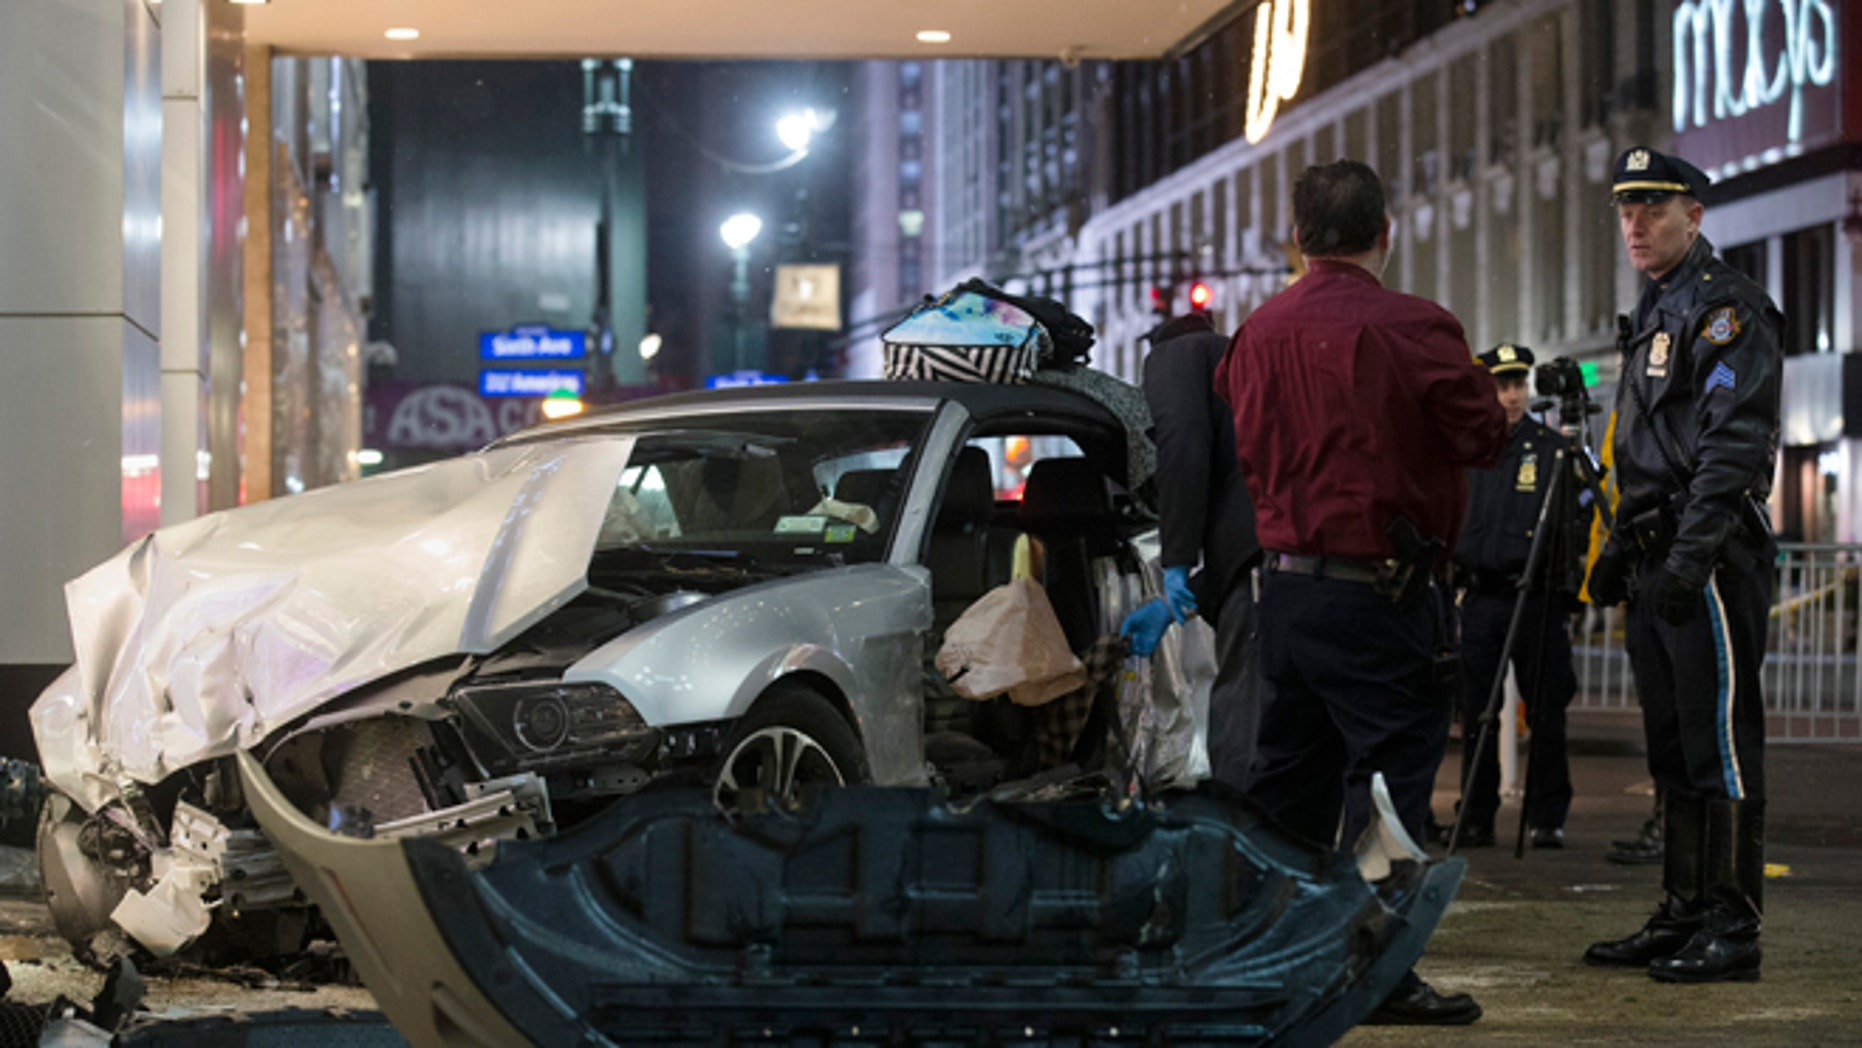 Police search a car at the scene of a vehicular accident on 34th Street, Thursday, Dec. 11, 2014, in New York. Six people were hurt when the car jumped a curb in midtown Manhattan and struck a group of people around 10 p.m. A fire department spokesman says the injured were taken to Bellevue hospital with serious but non-life threatening injuries. (AP Photo/John Minchillo)